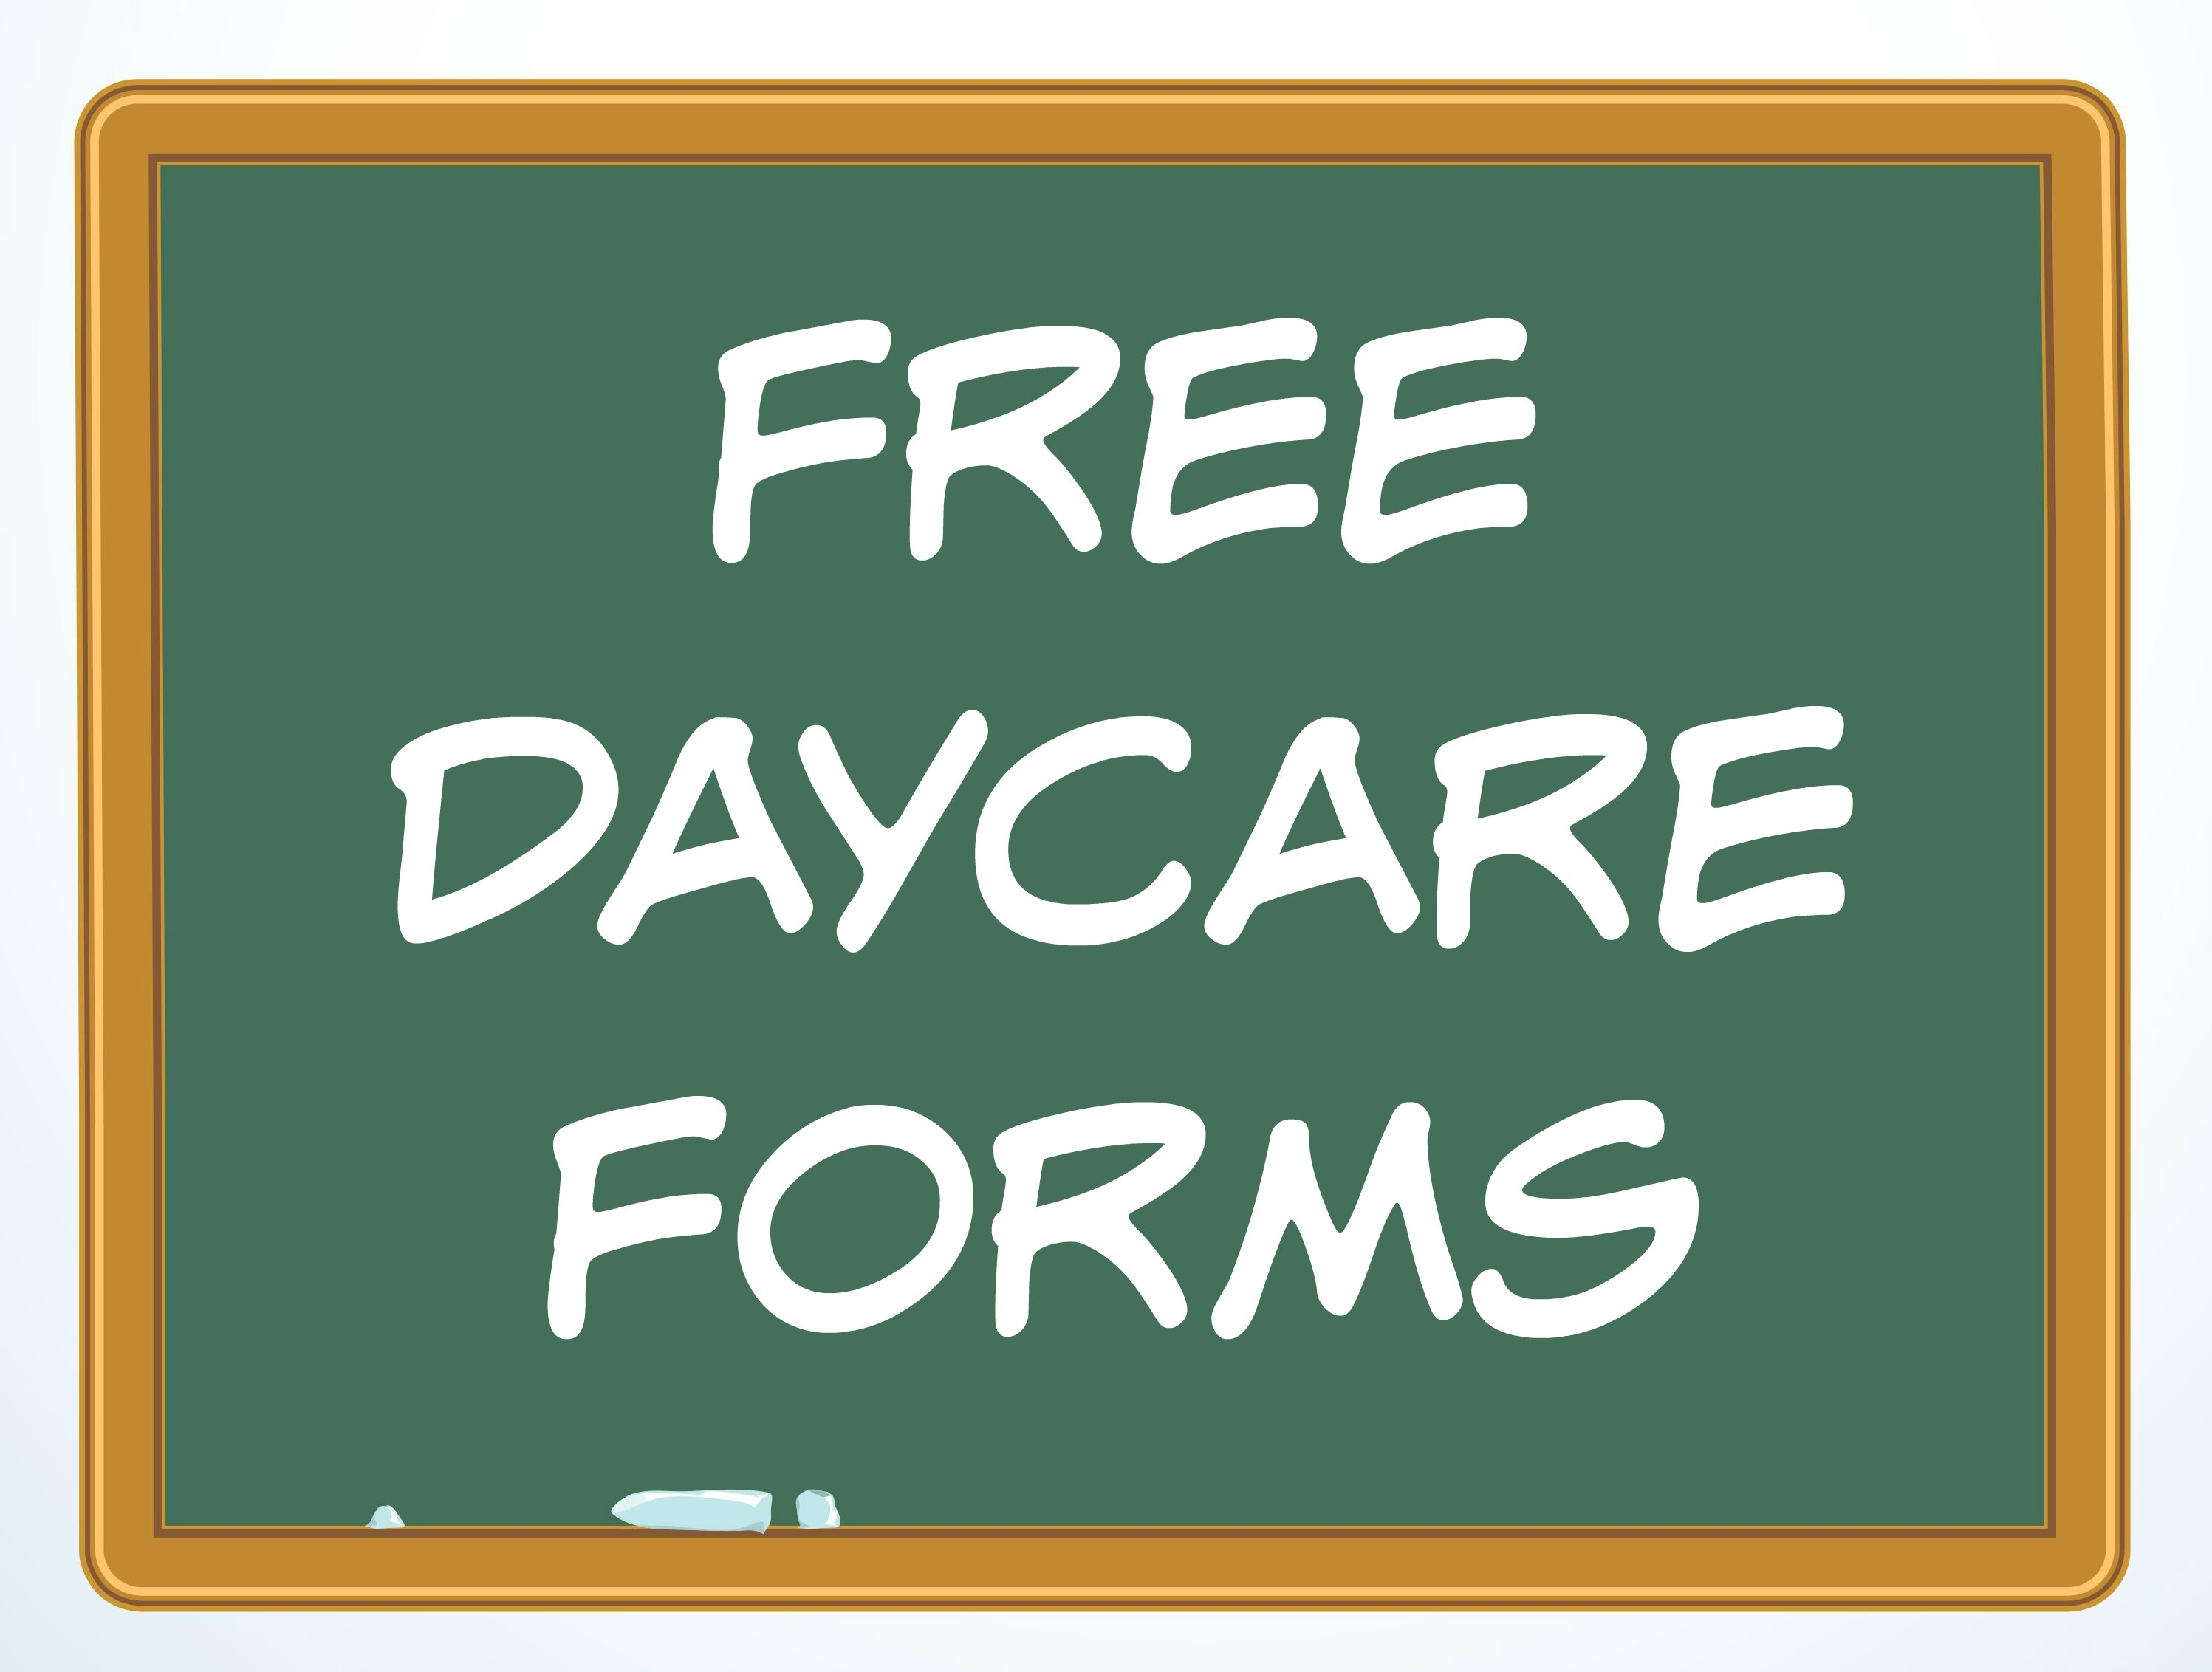 Free Daycare Forms And Sample Documents - Free Printable Daycare Forms